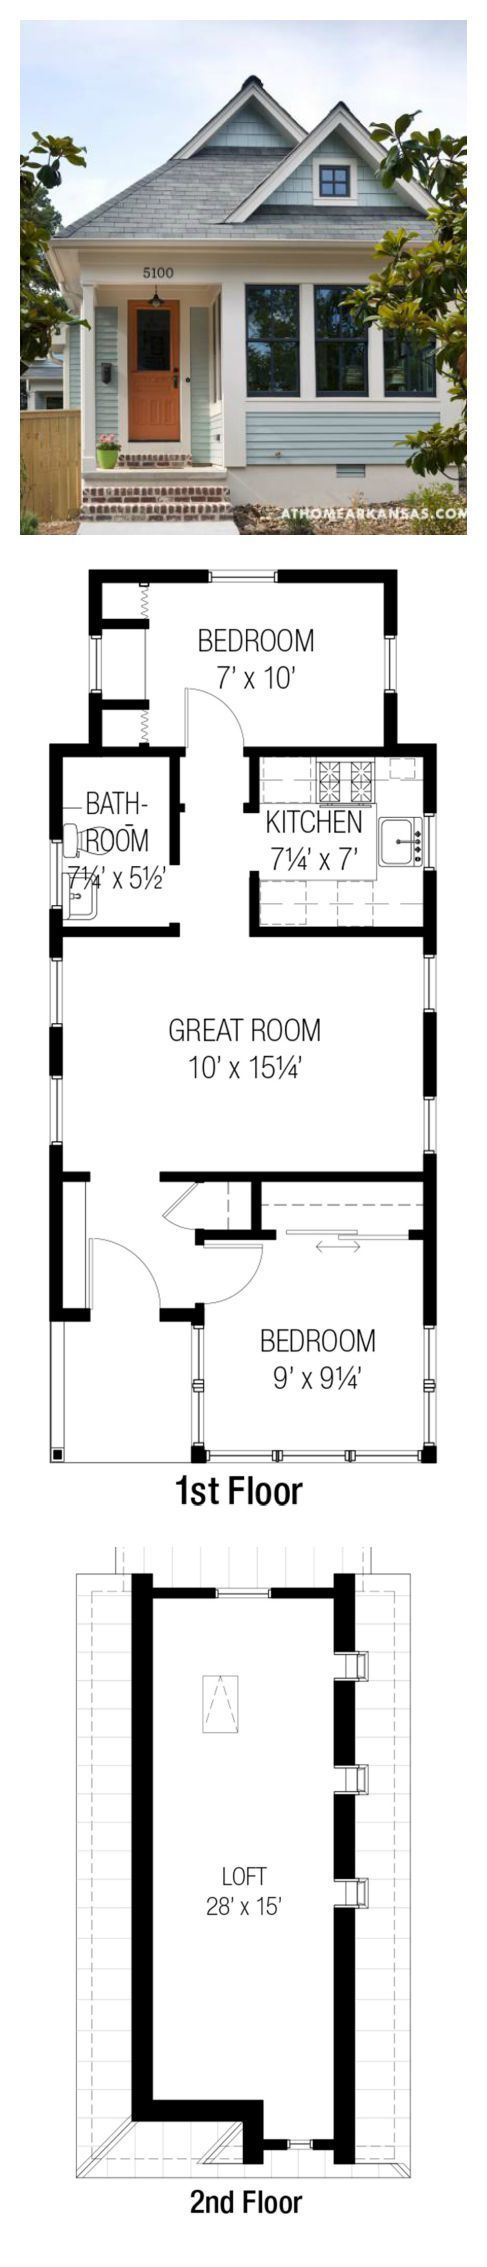 Tumbleweed Tiny House Floor Plans: Plan #915-16/Whidbey From Tumbleweed Tiny House Co.